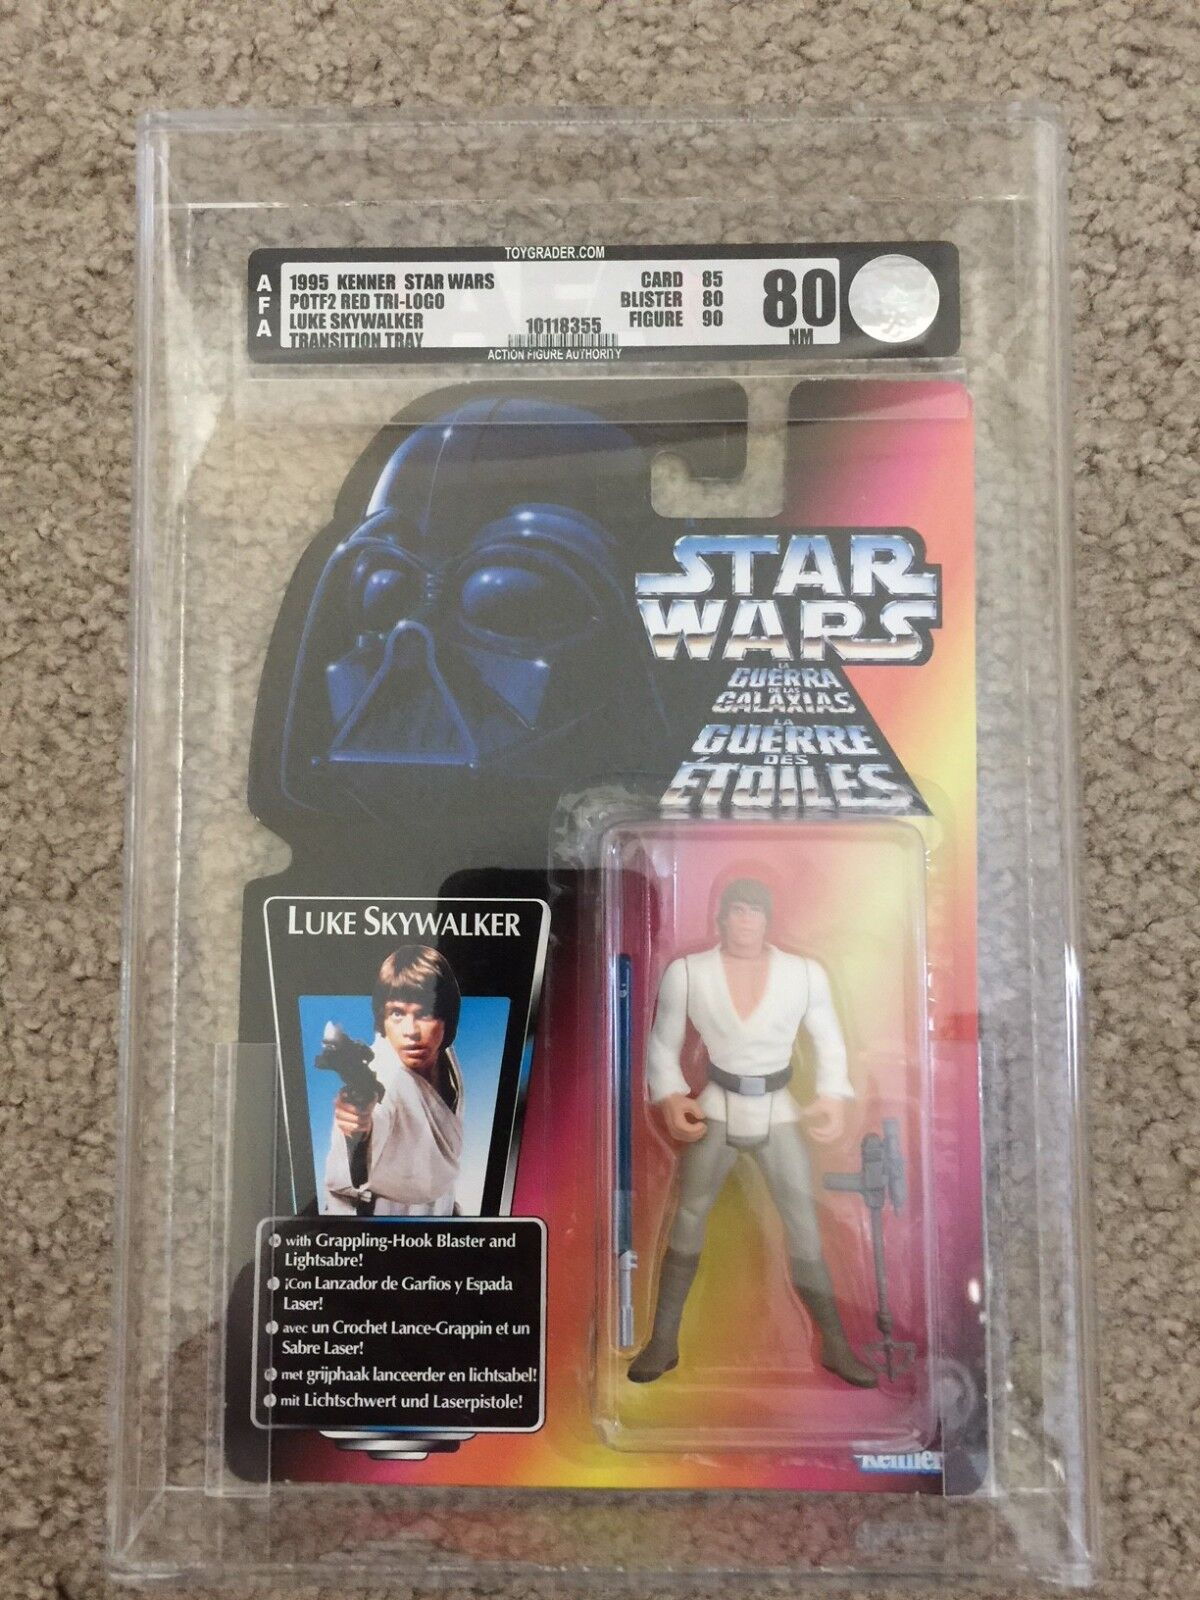 STAR WARS 1995 POTF Tri-Logo Luke Skywalker Transition Plateau SS LT MOC AFA 80